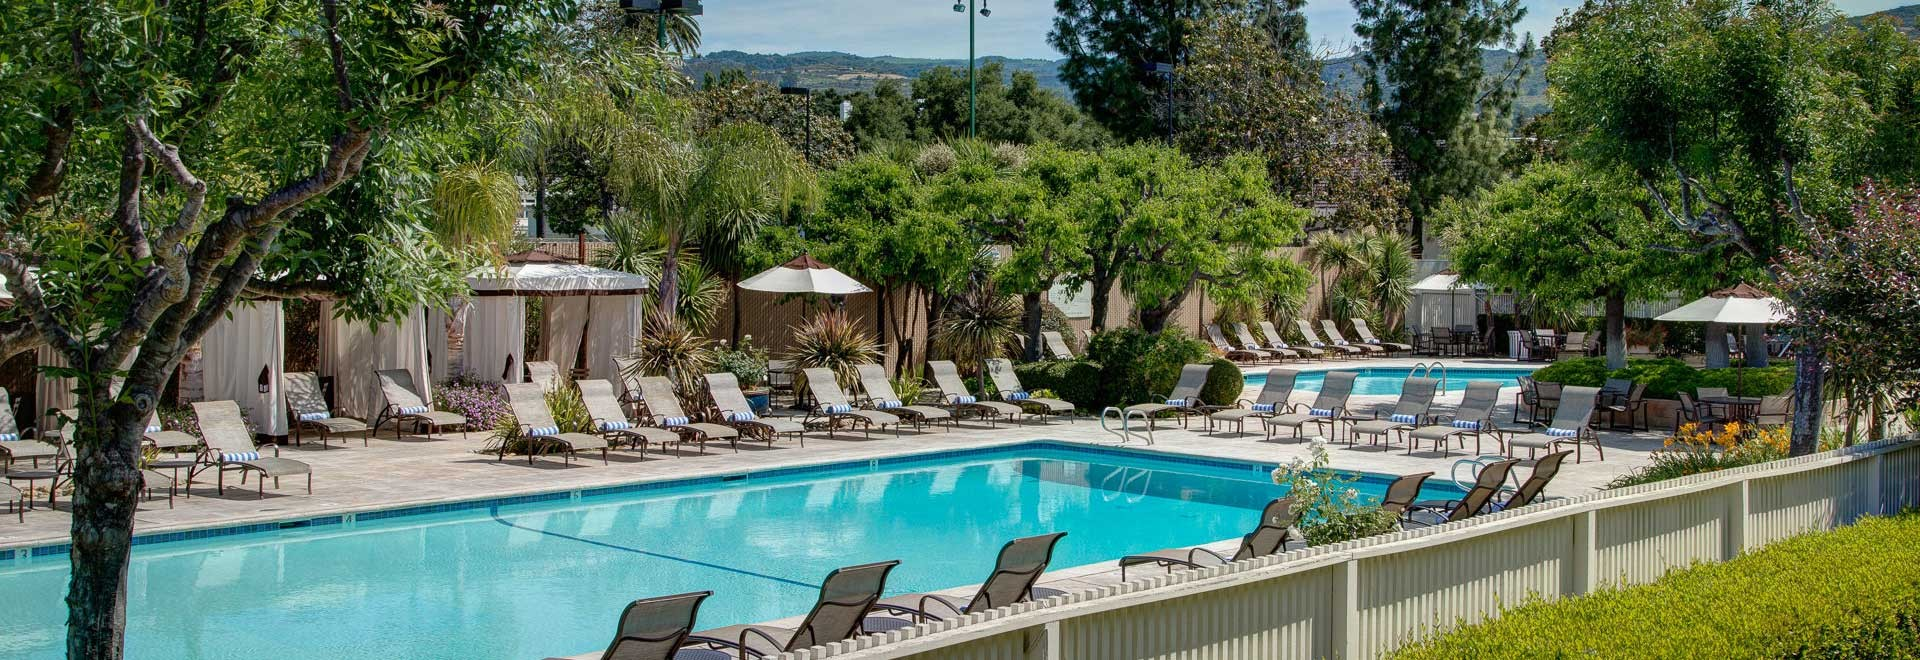 Silverado Resort and Spa, California - Book. Travel. Play.